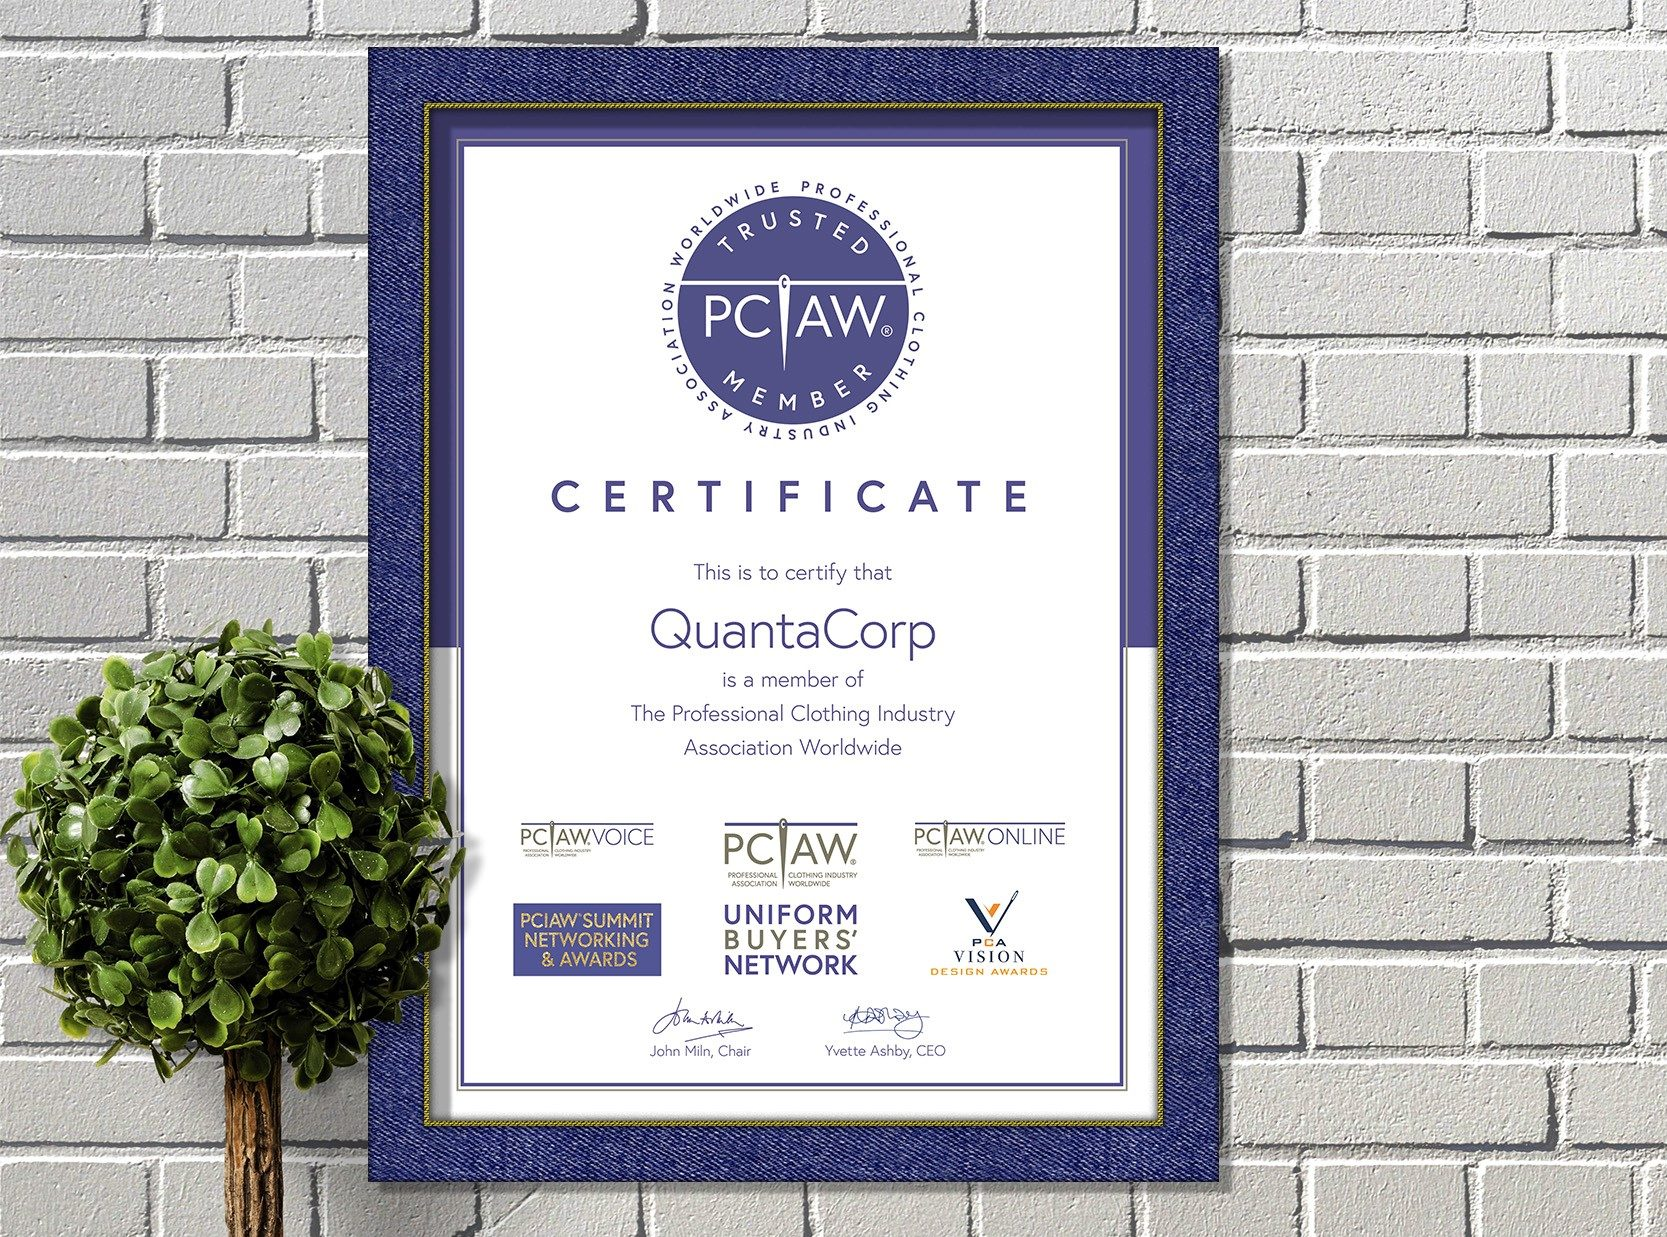 PCIAW® is pleased to include QuantaCorp, the dynamic body scanning technology provider, as an esteemed PCIAW® Trusted Member